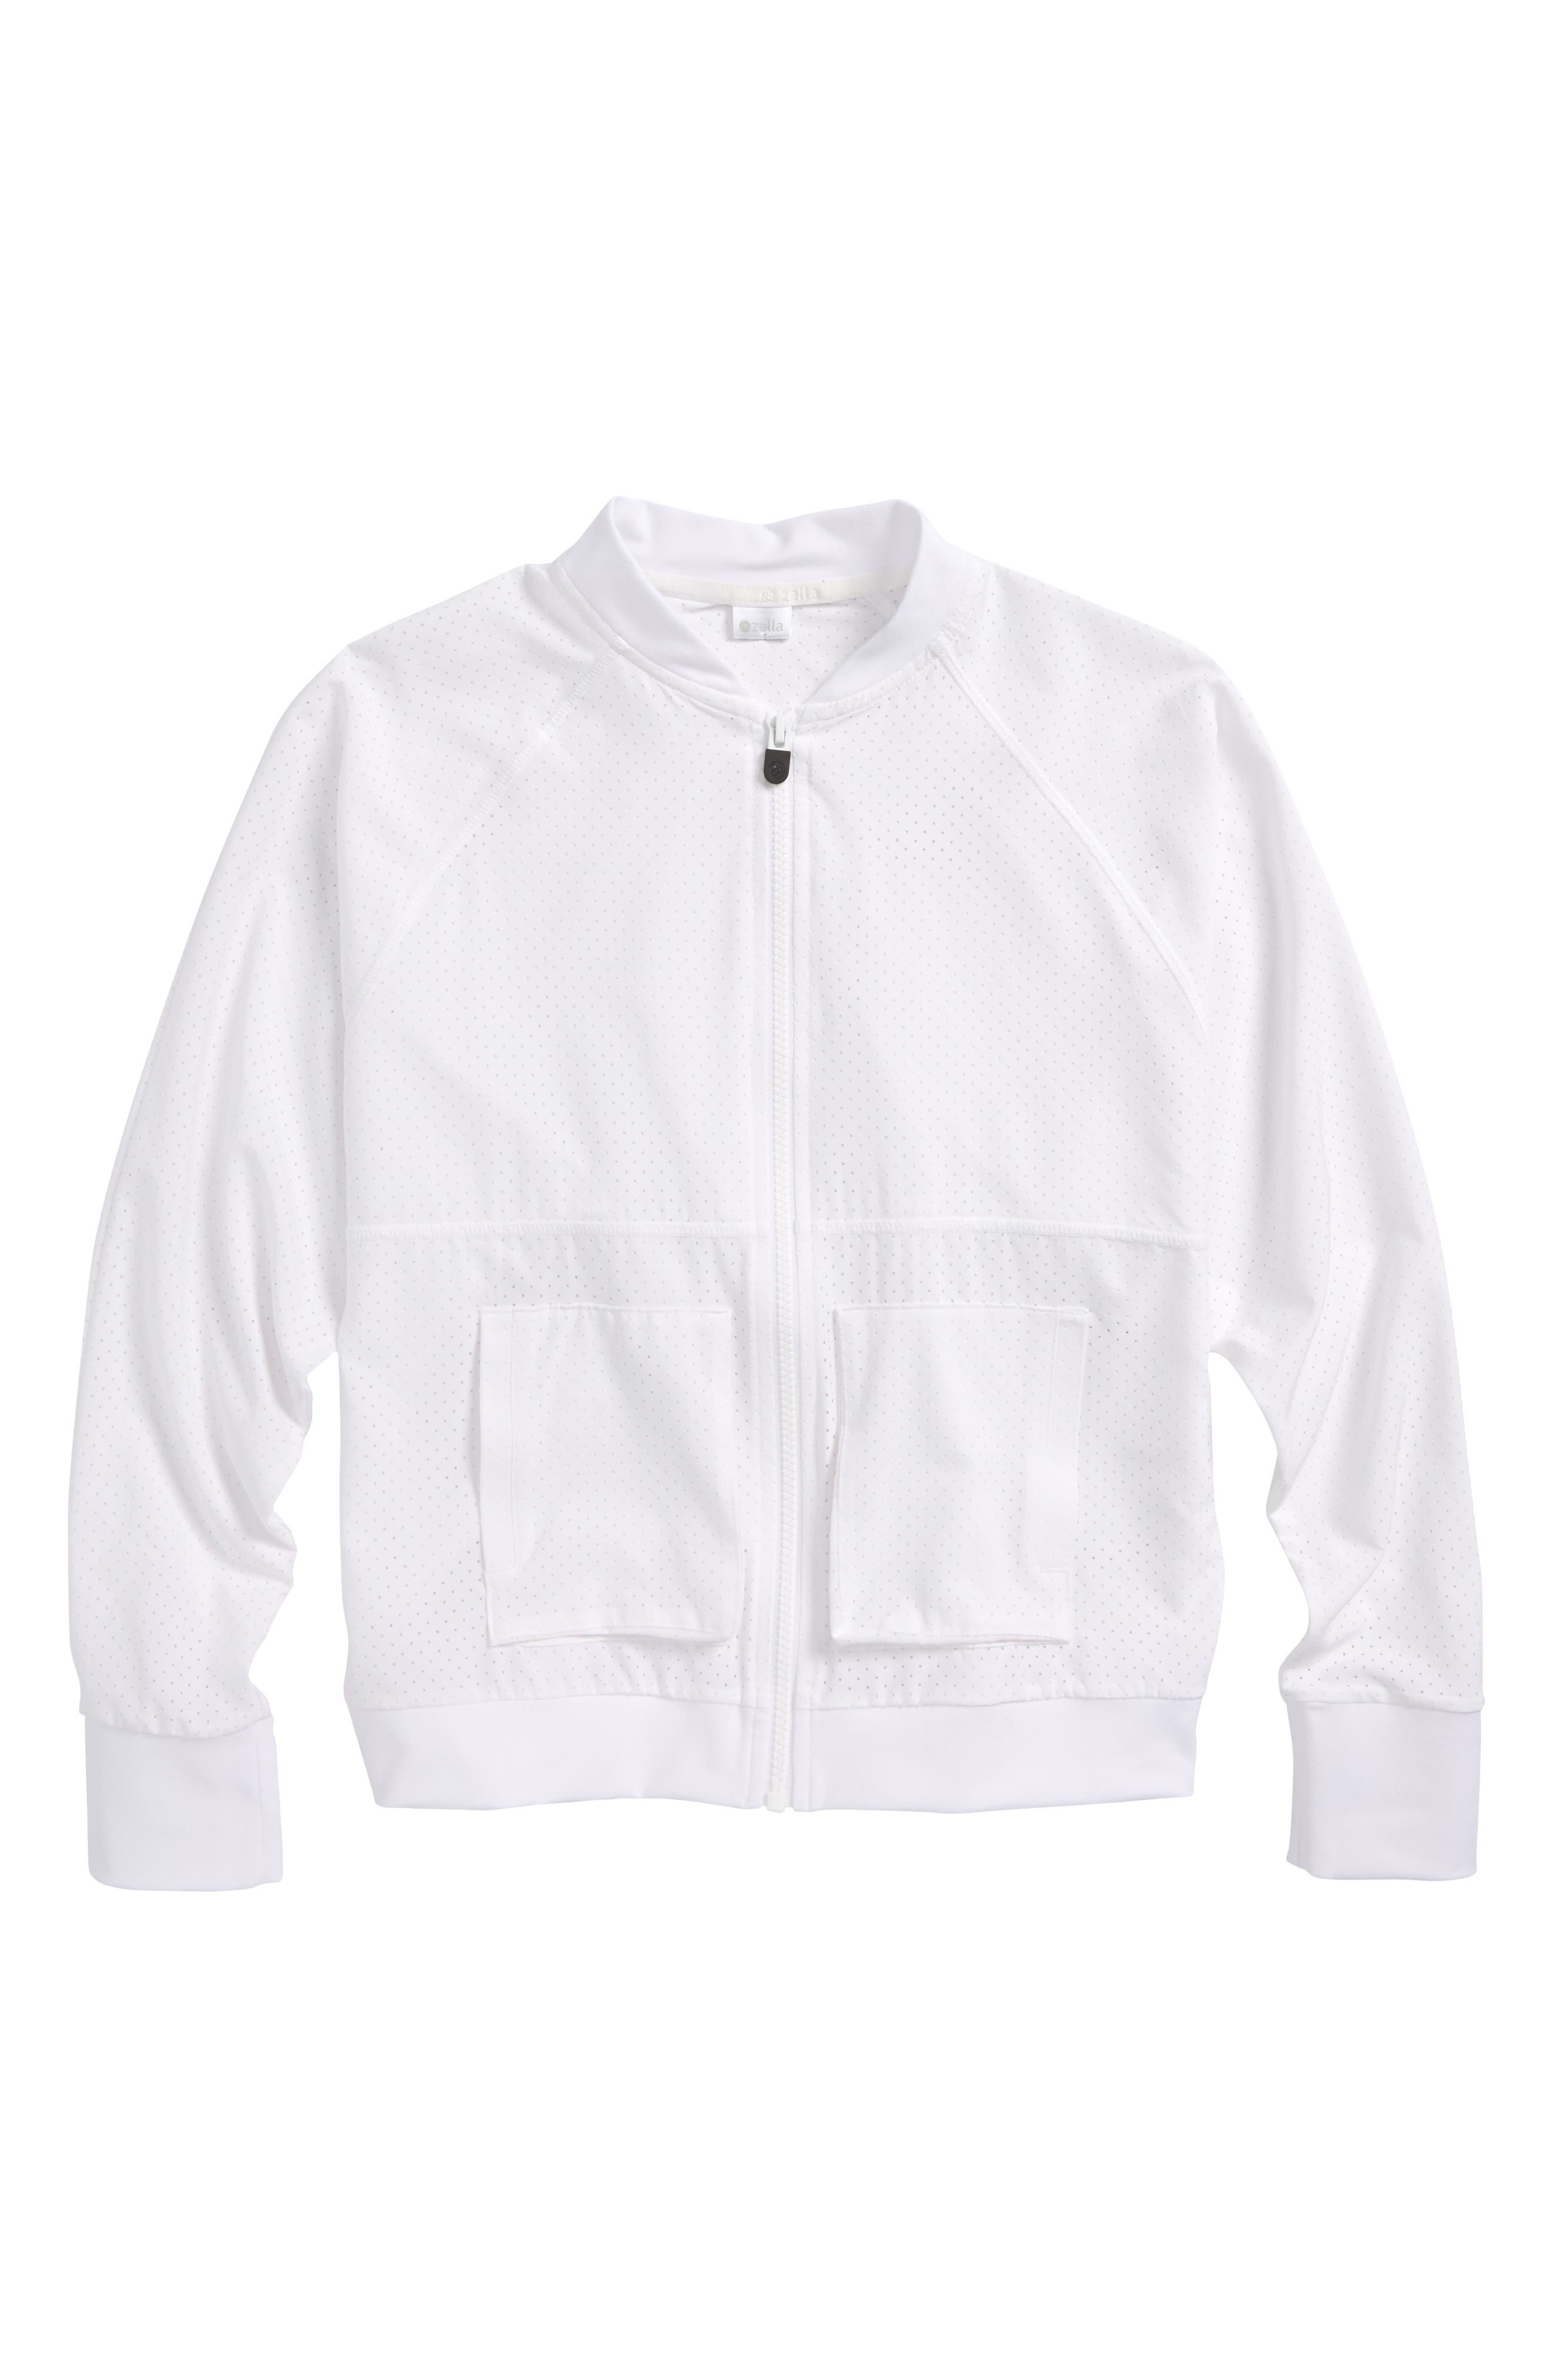 Batwing Bomber Jacket,                         Main,                         color, White